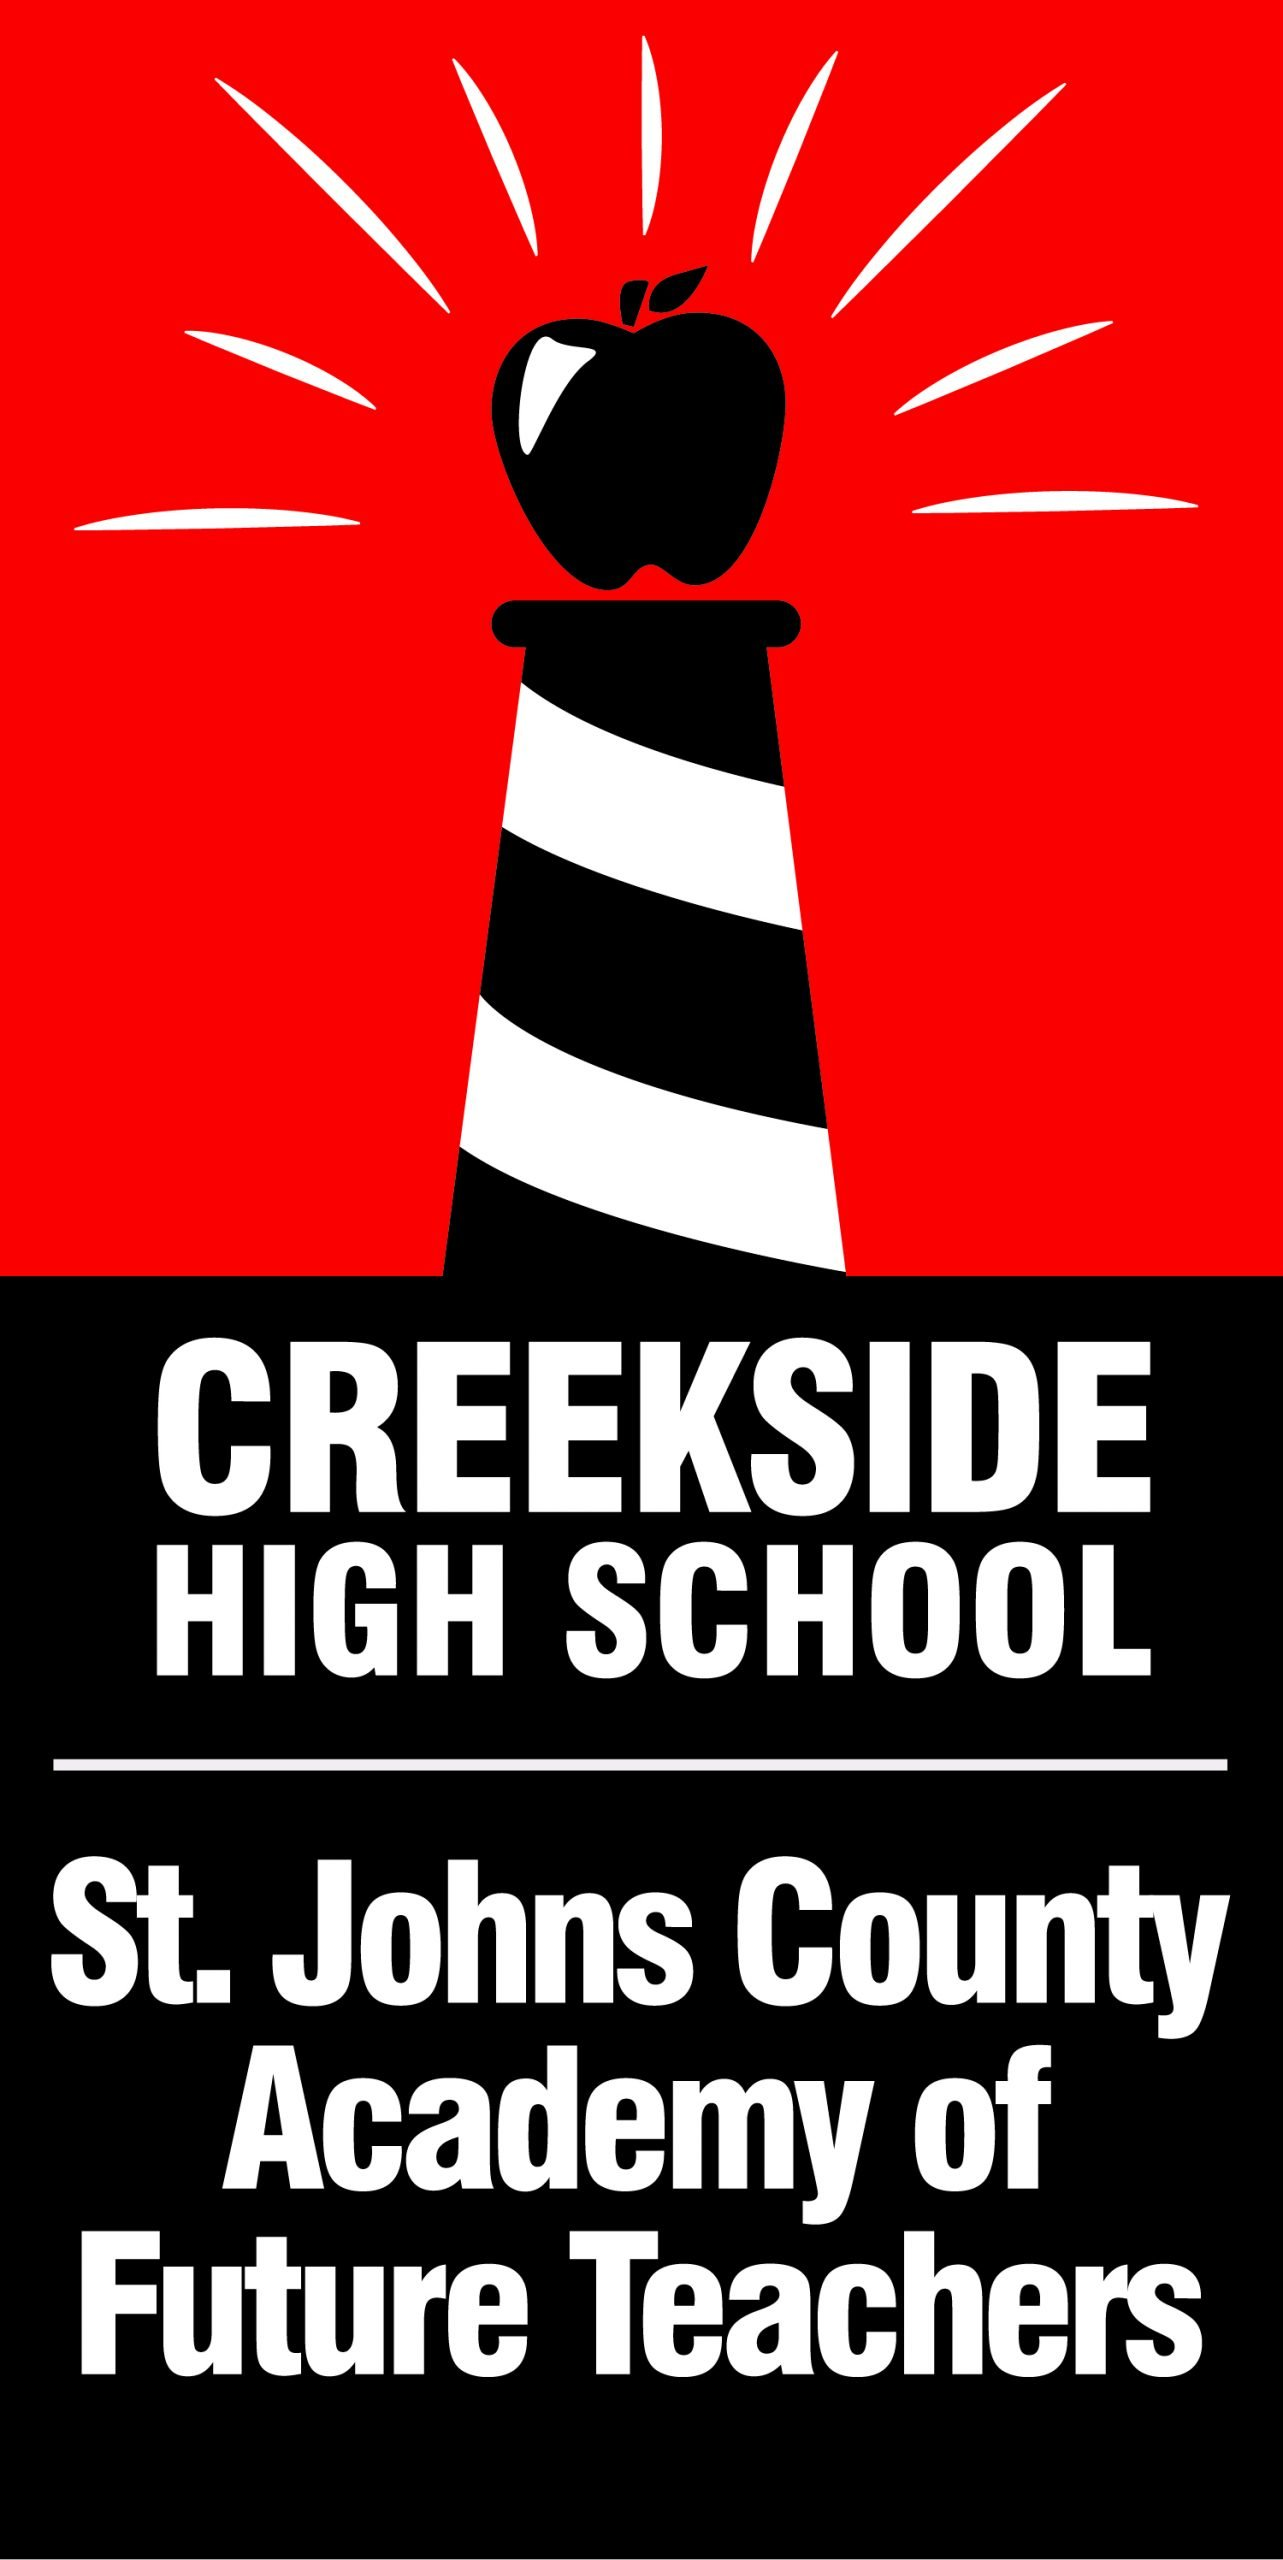 St. Johns County Academy of Future Teachers at Creekside High School